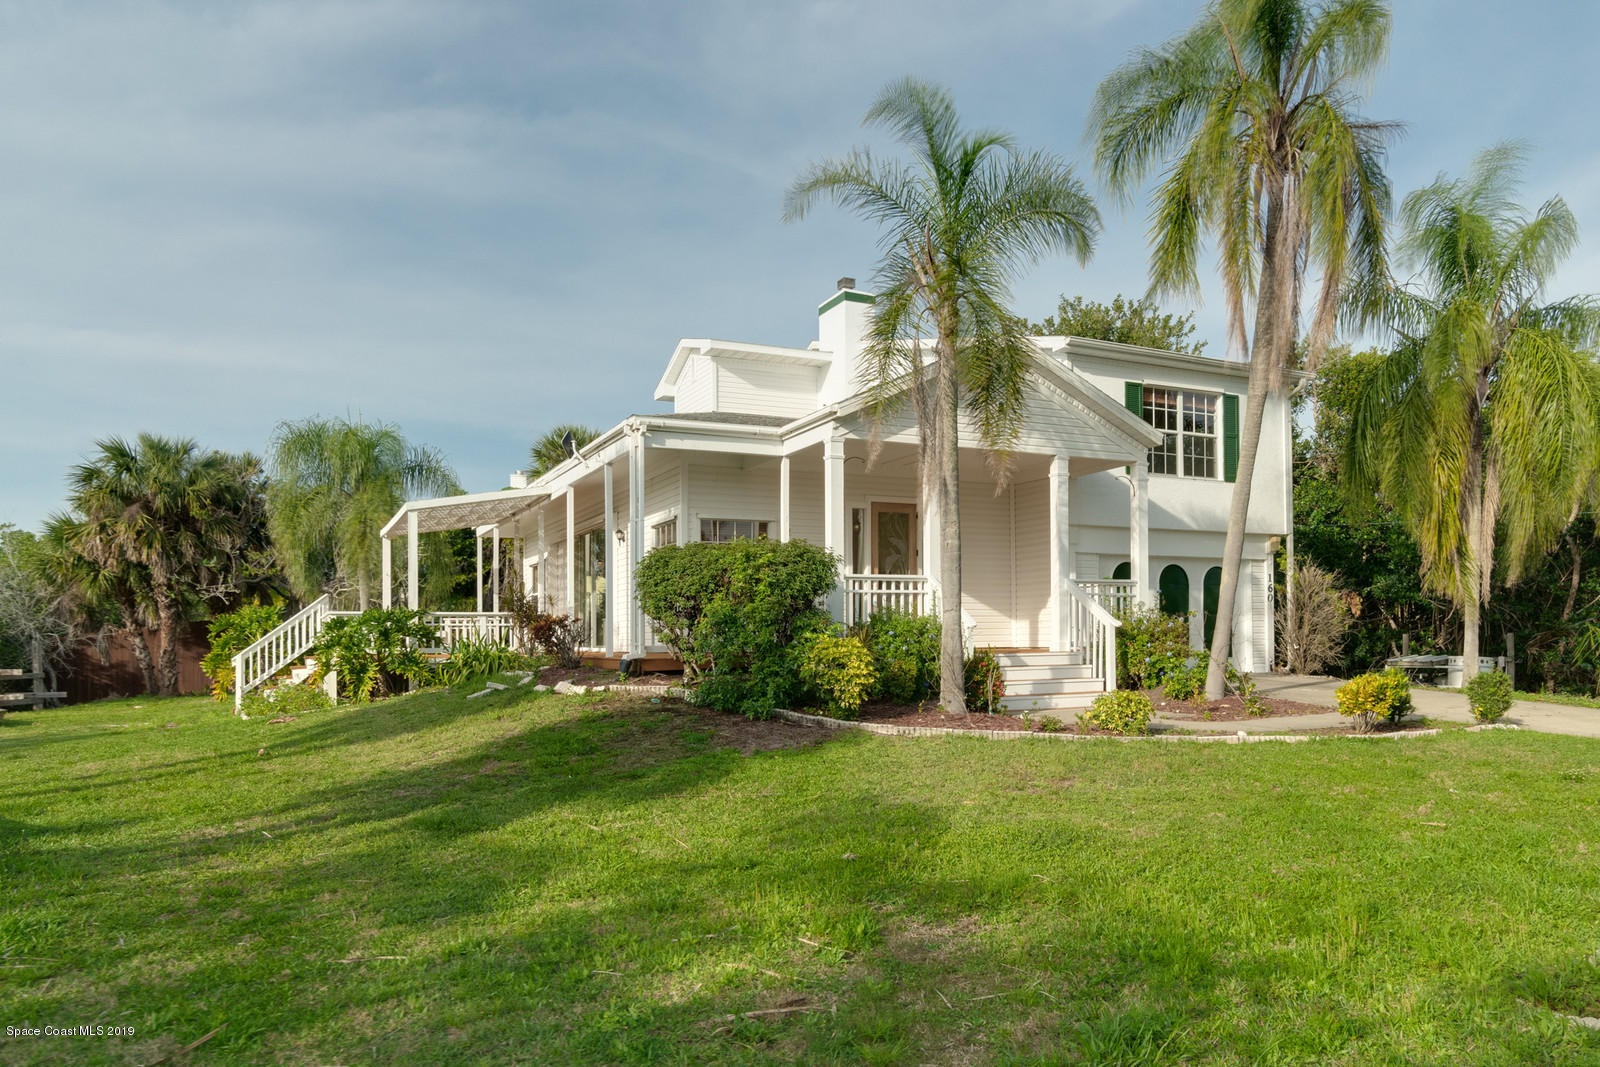 Single Family Home for Sale at 160 River Oaks Melbourne Beach, Florida 32951 United States